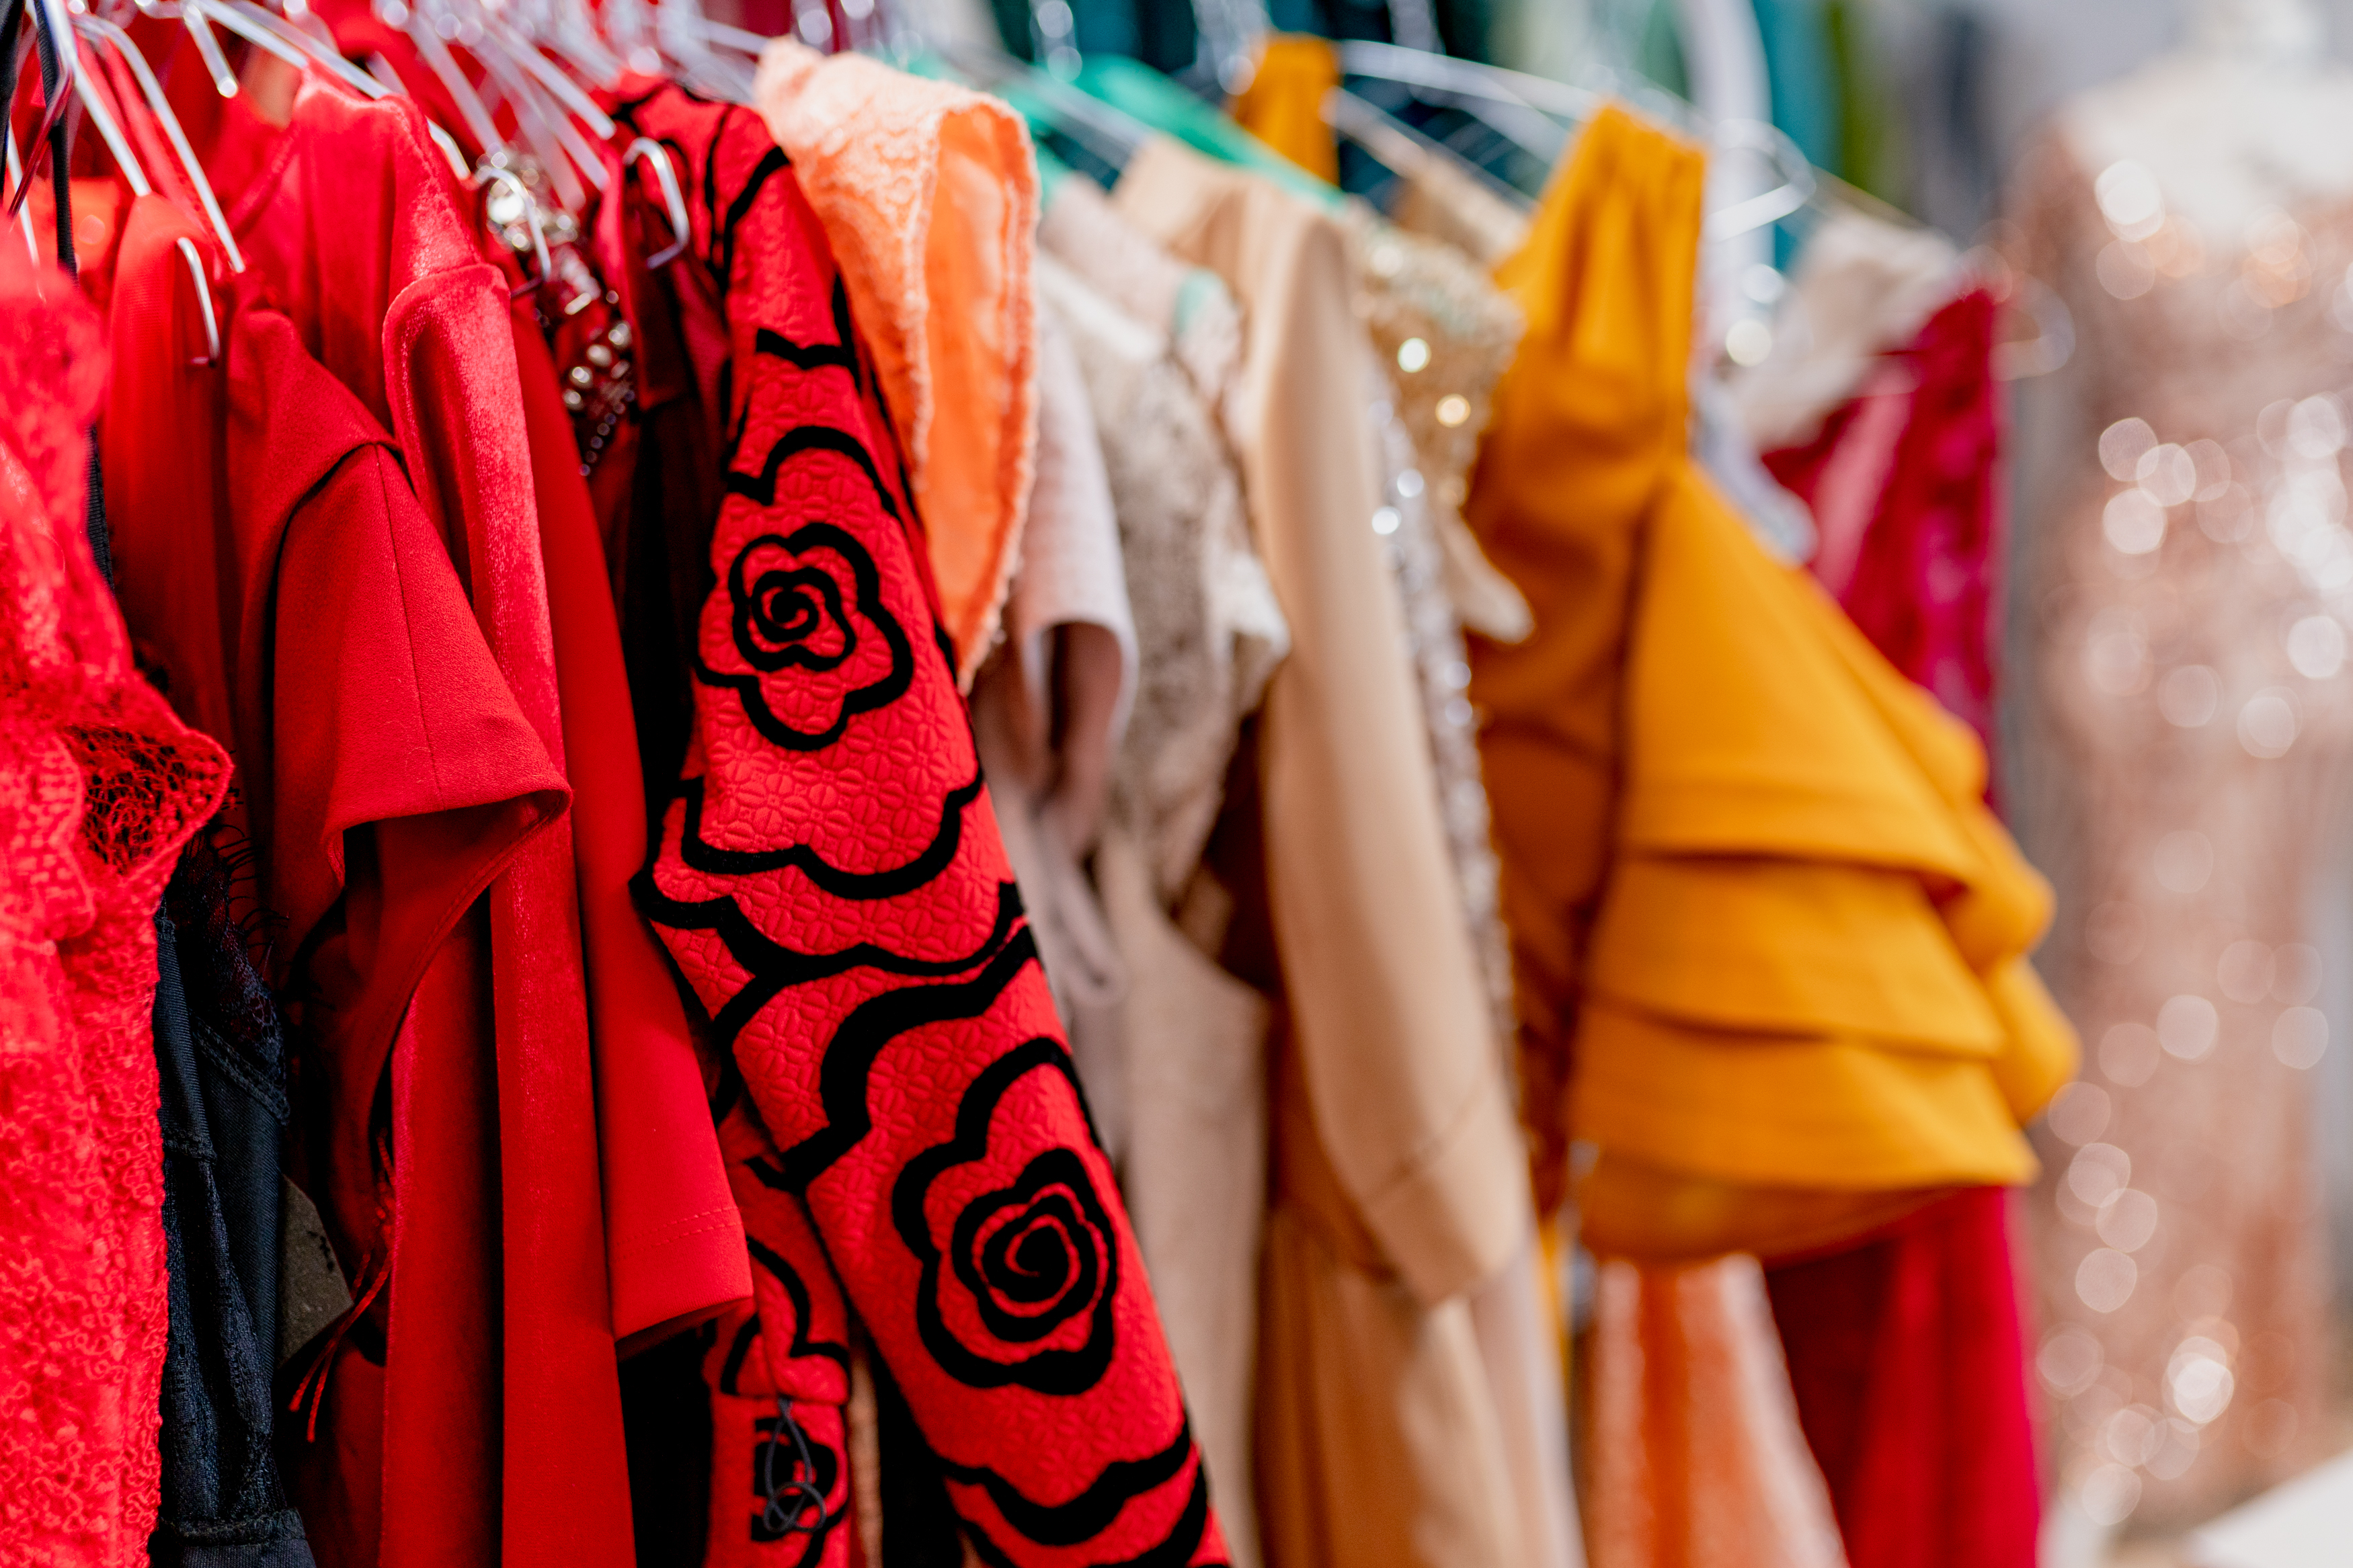 dresses hanging on a clothing rack